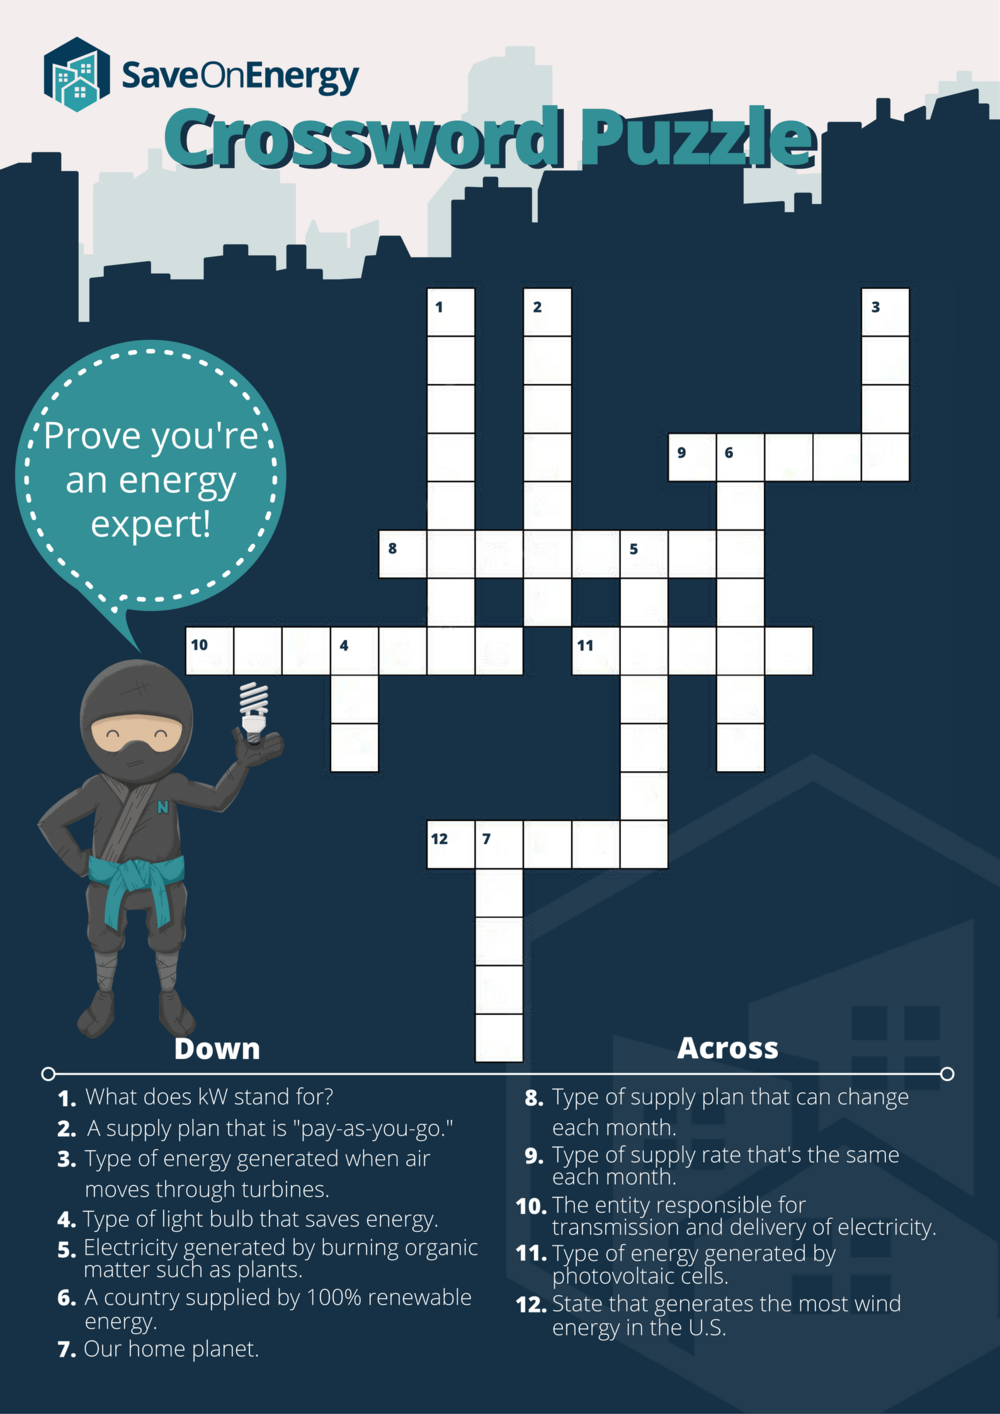 SOE_Crossword_Puzzle